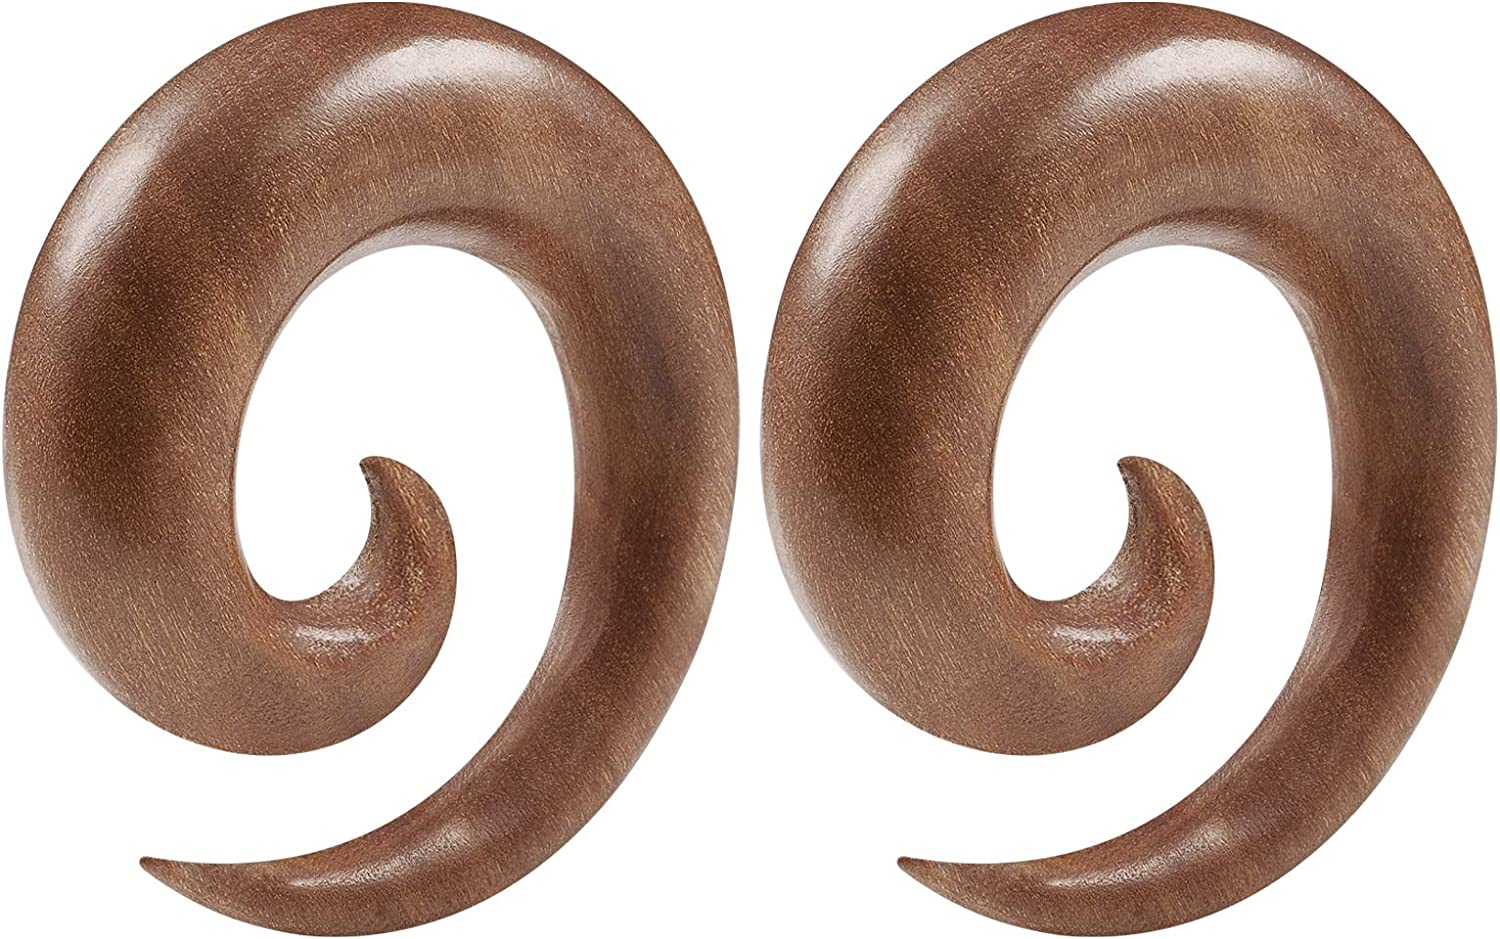 BIG GAUGES Pair of Sawo Wood Spiral Coil Taper Piercing Jewelry Ear Plugs Stretching Expander Earring Stretcher Lobe